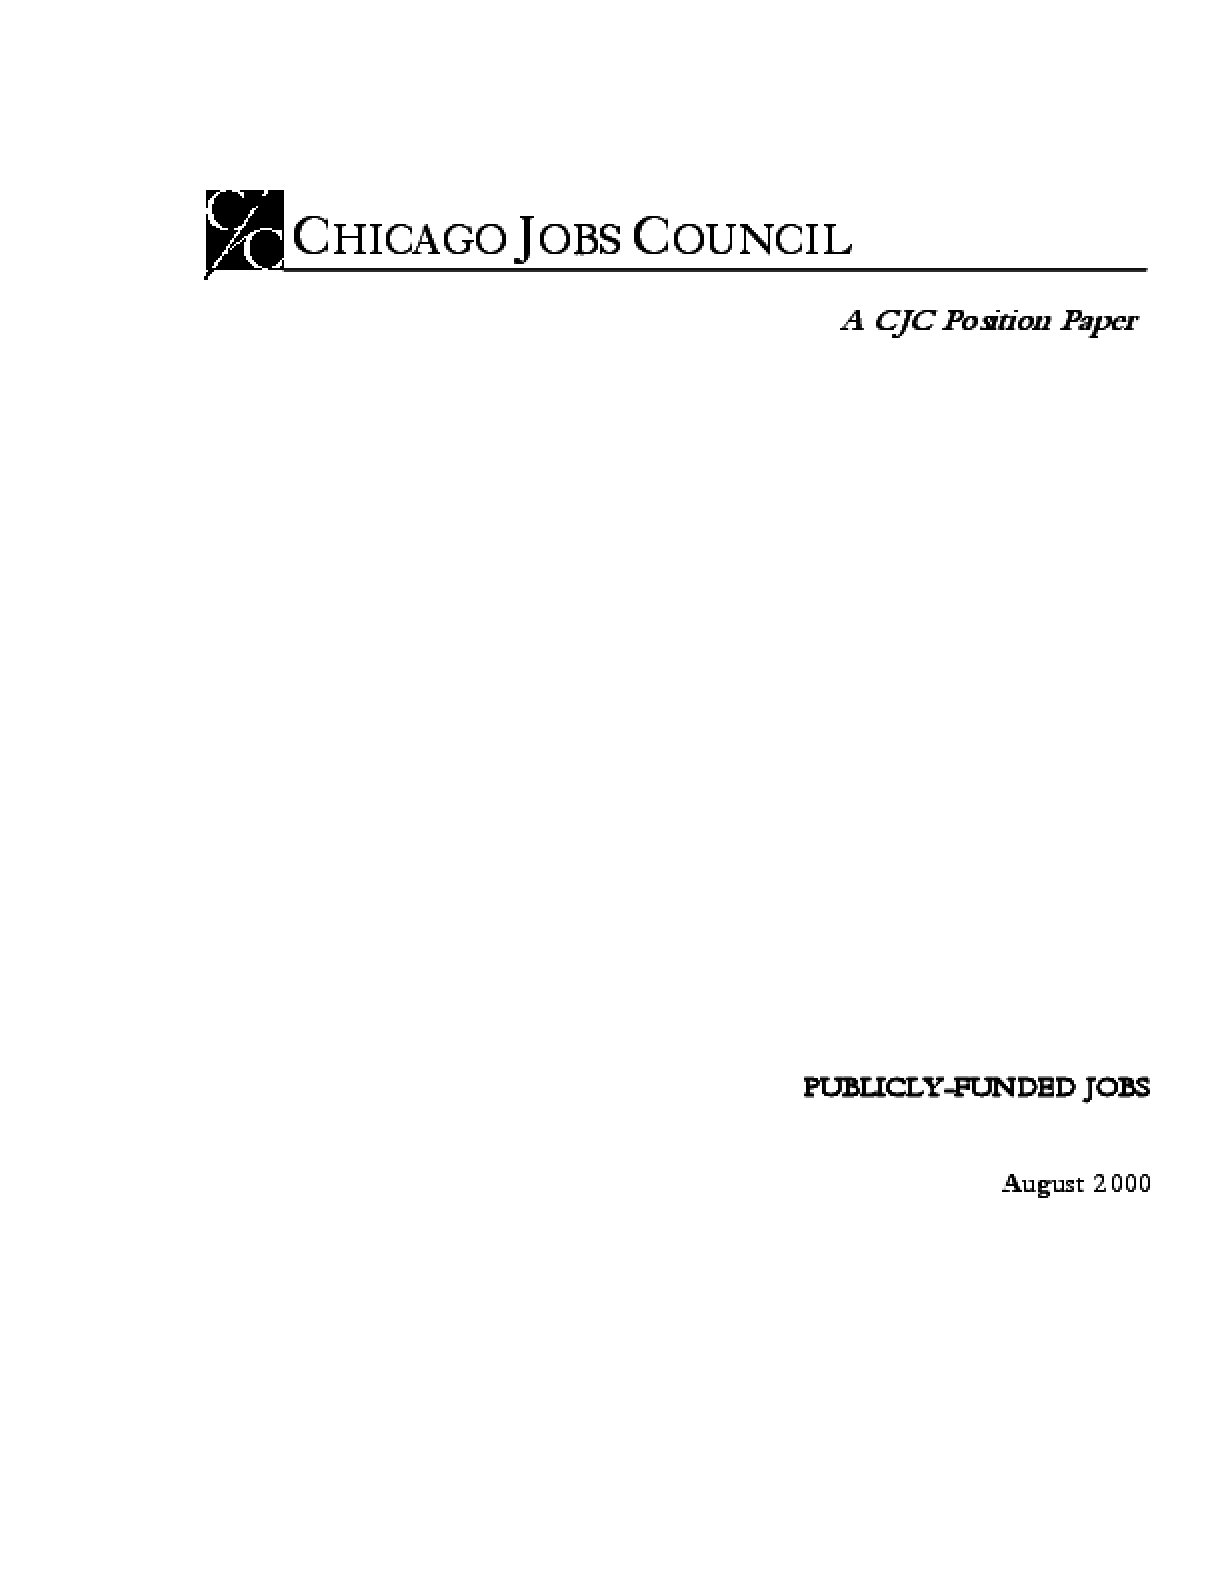 Publicly Funded Jobs, A CJC Position Paper